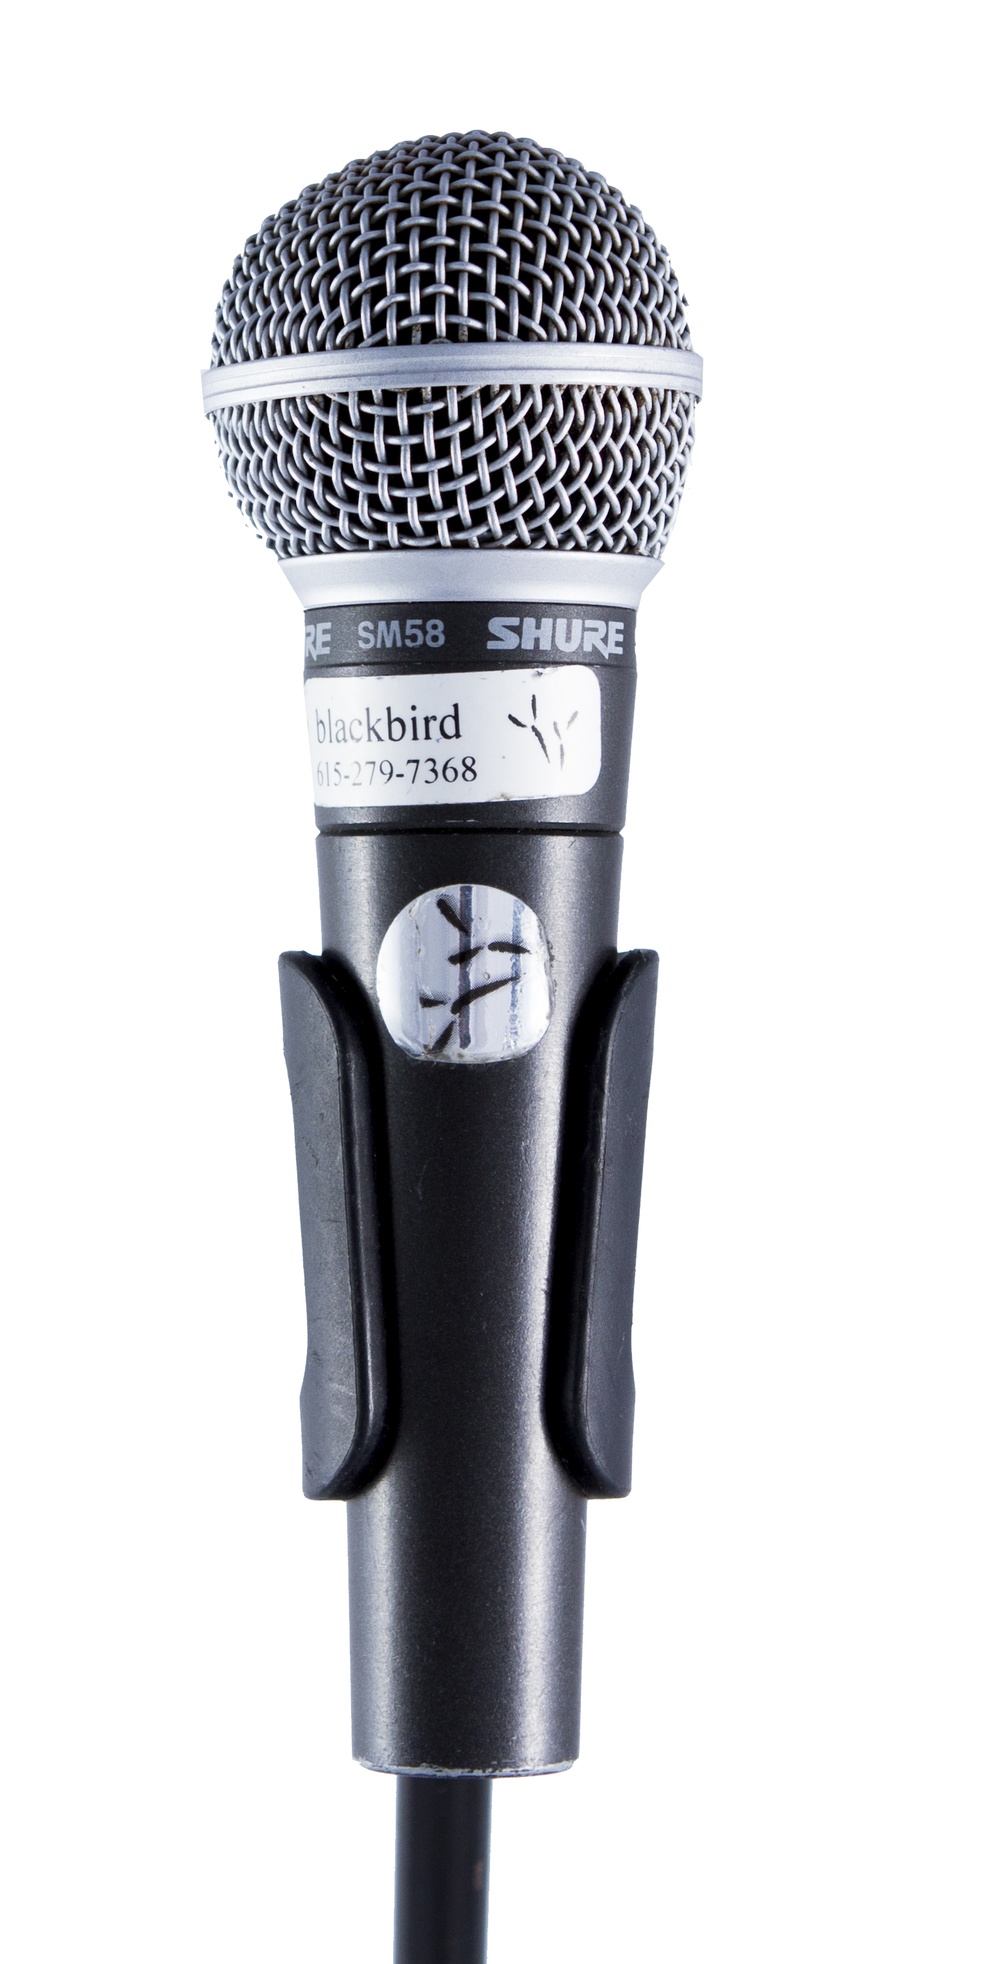 Shure SM58 - $10 day